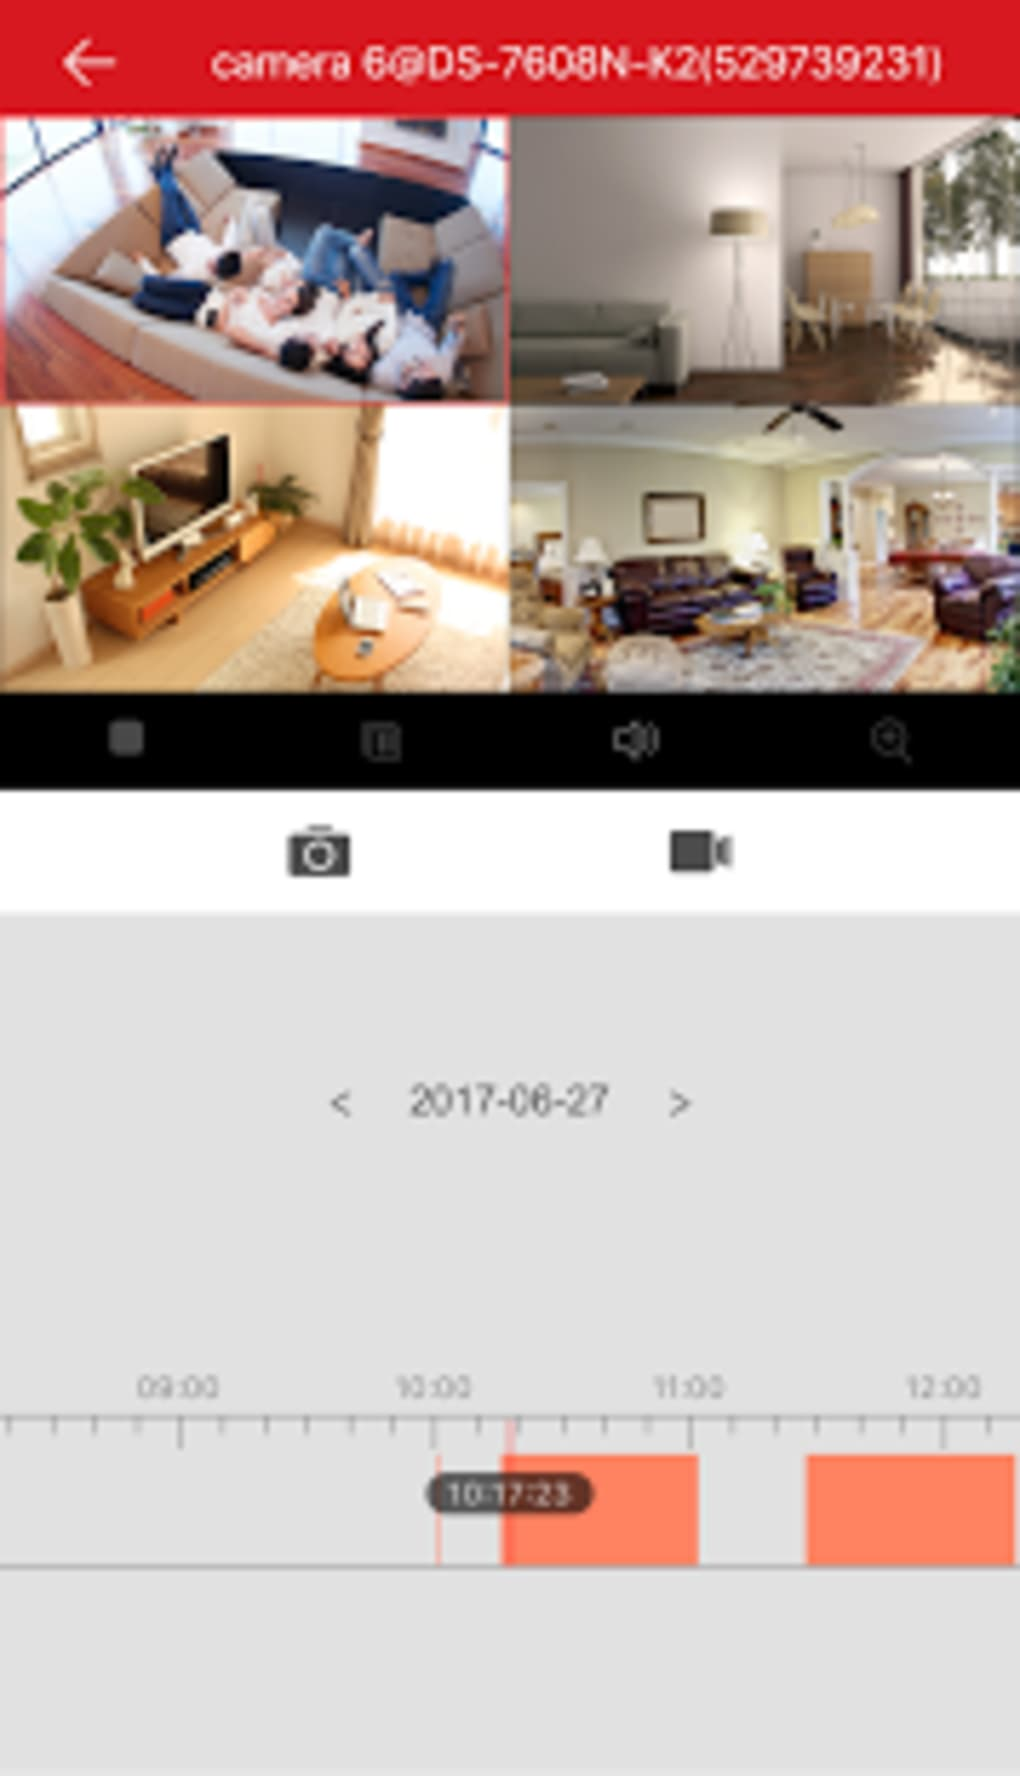 Hik-Connect for Android - Download